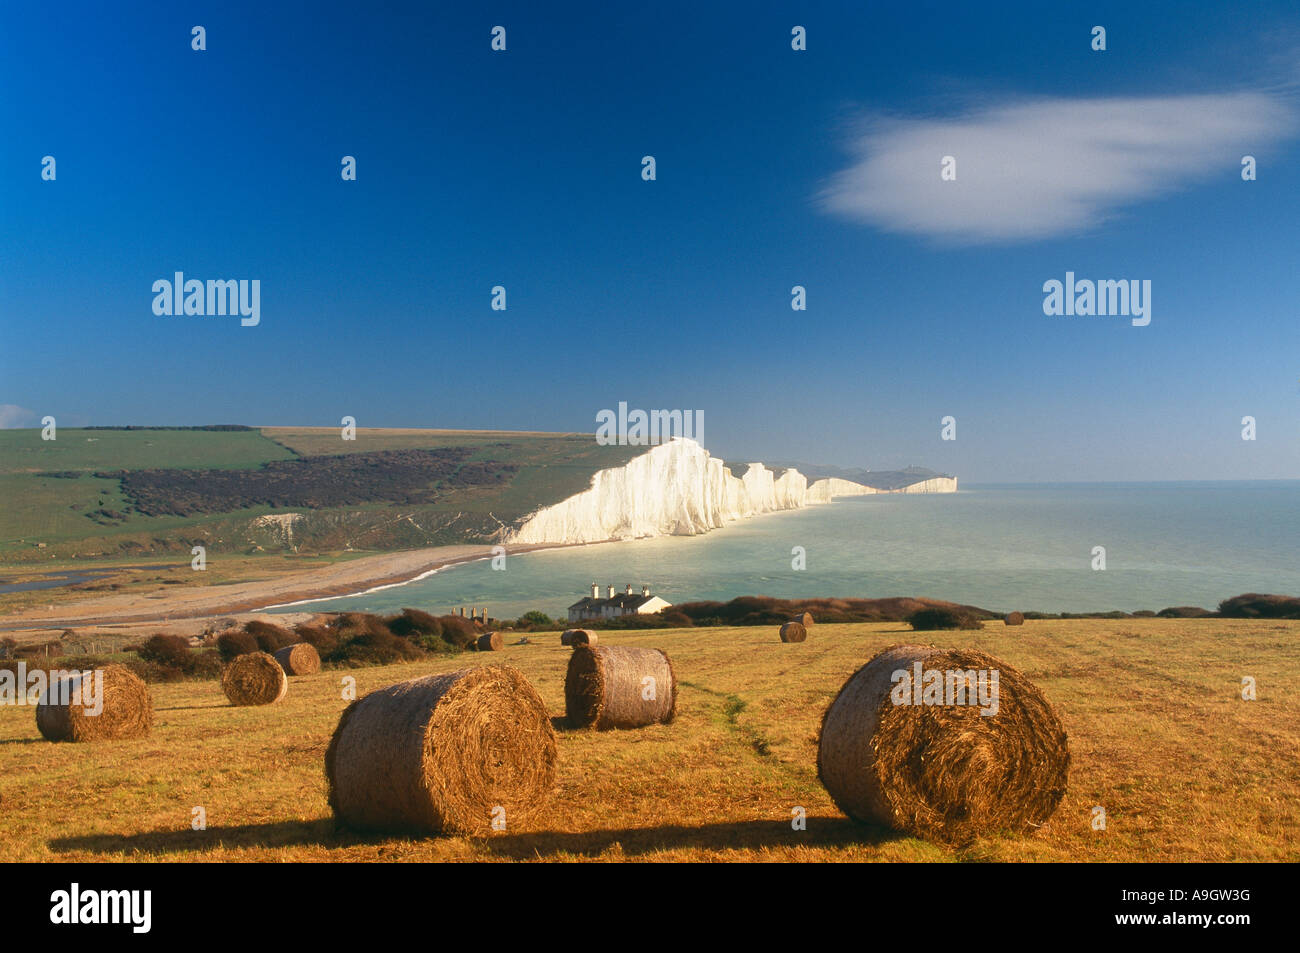 white cliffs and straw bales with the white cliffs of the Seven Sisters Sussex England UK - Stock Image